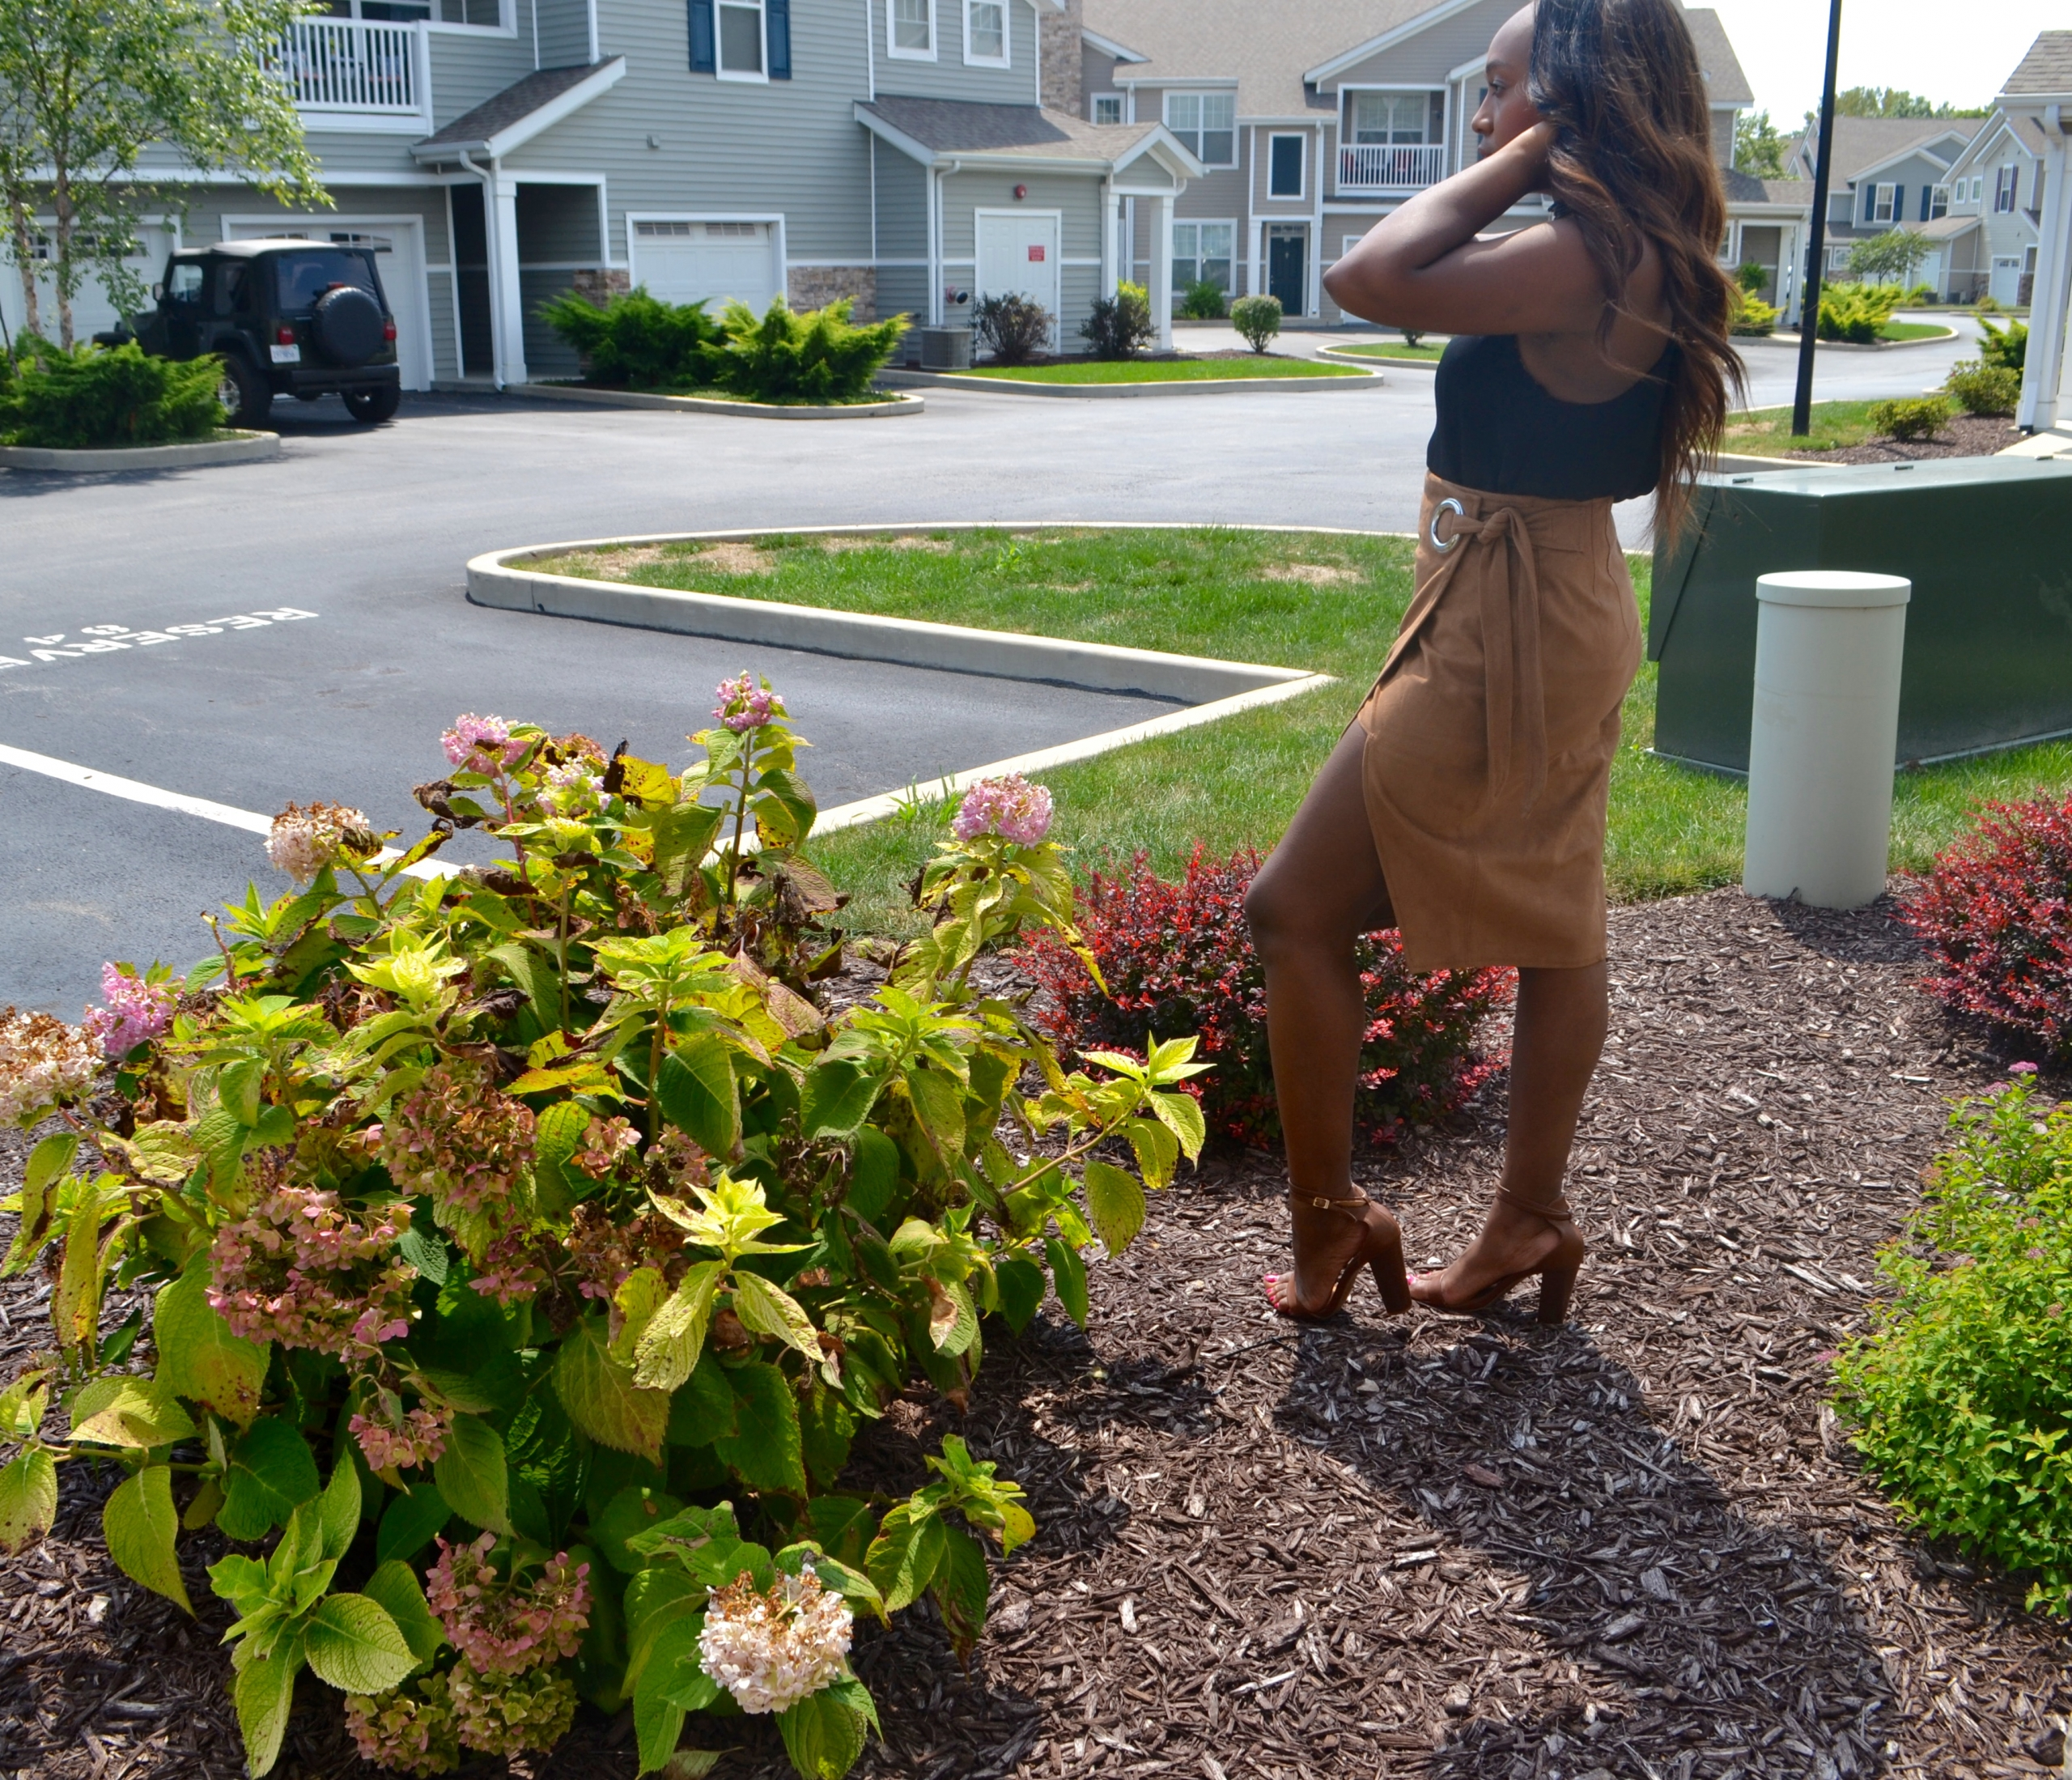 #WorkingWomanWednesday: Taking a STEP in Suede